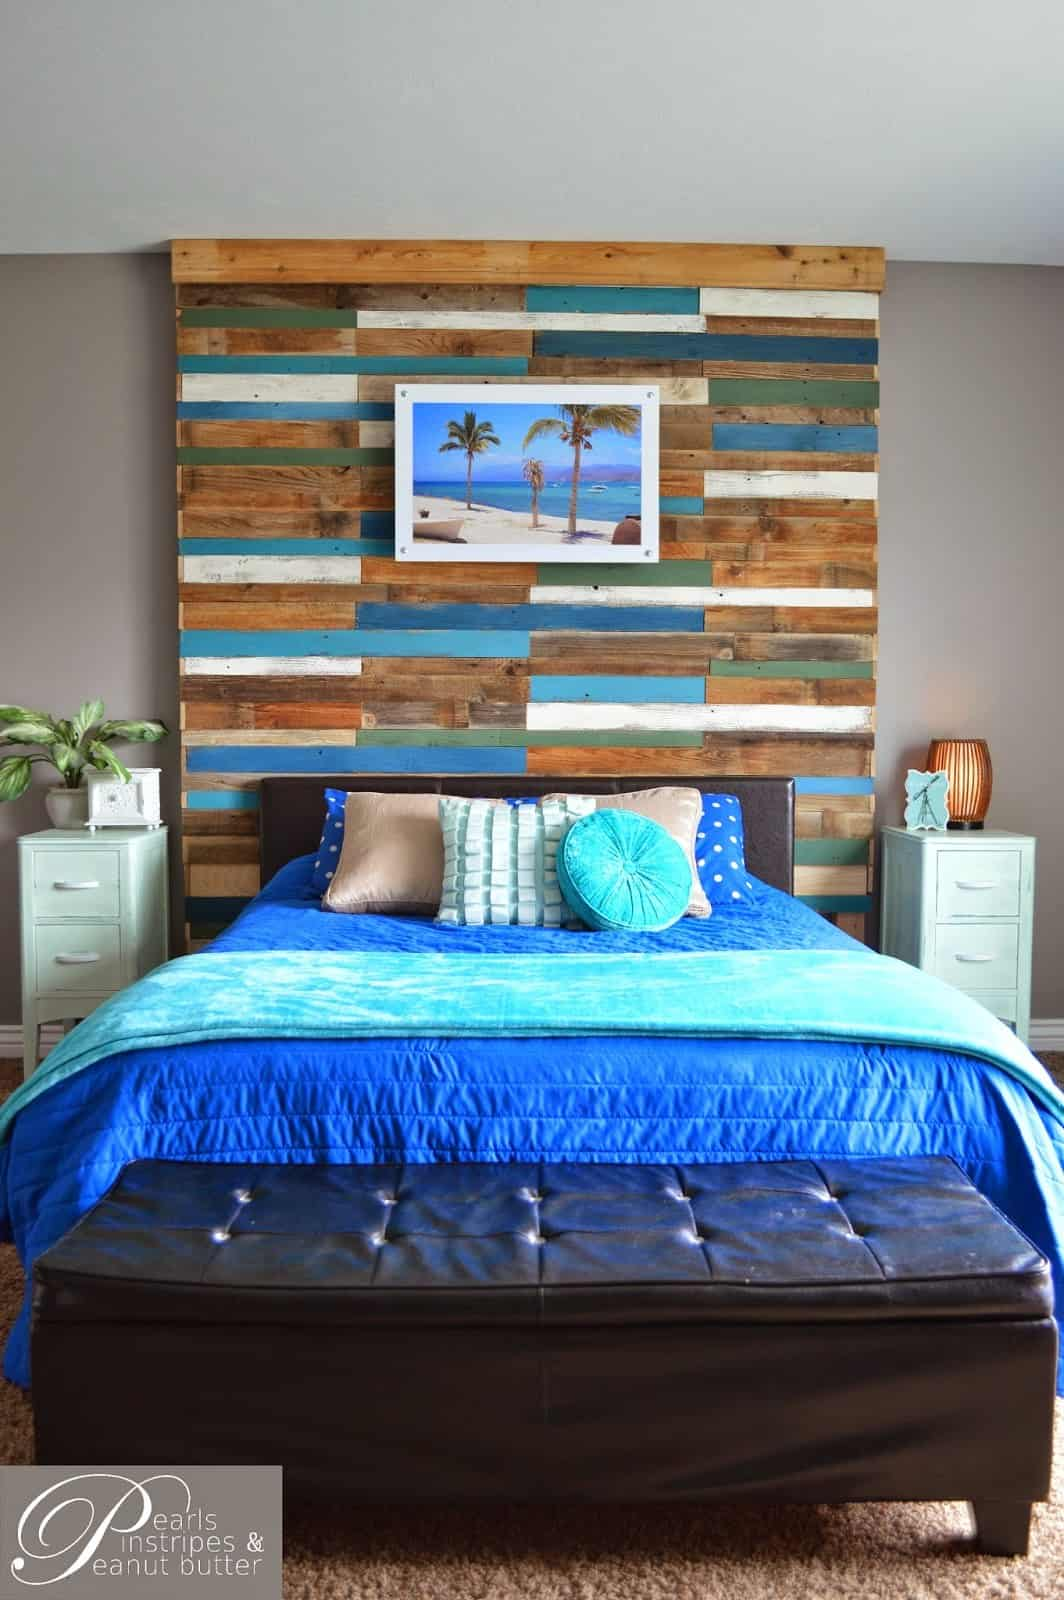 Diy colorful wooden headboard